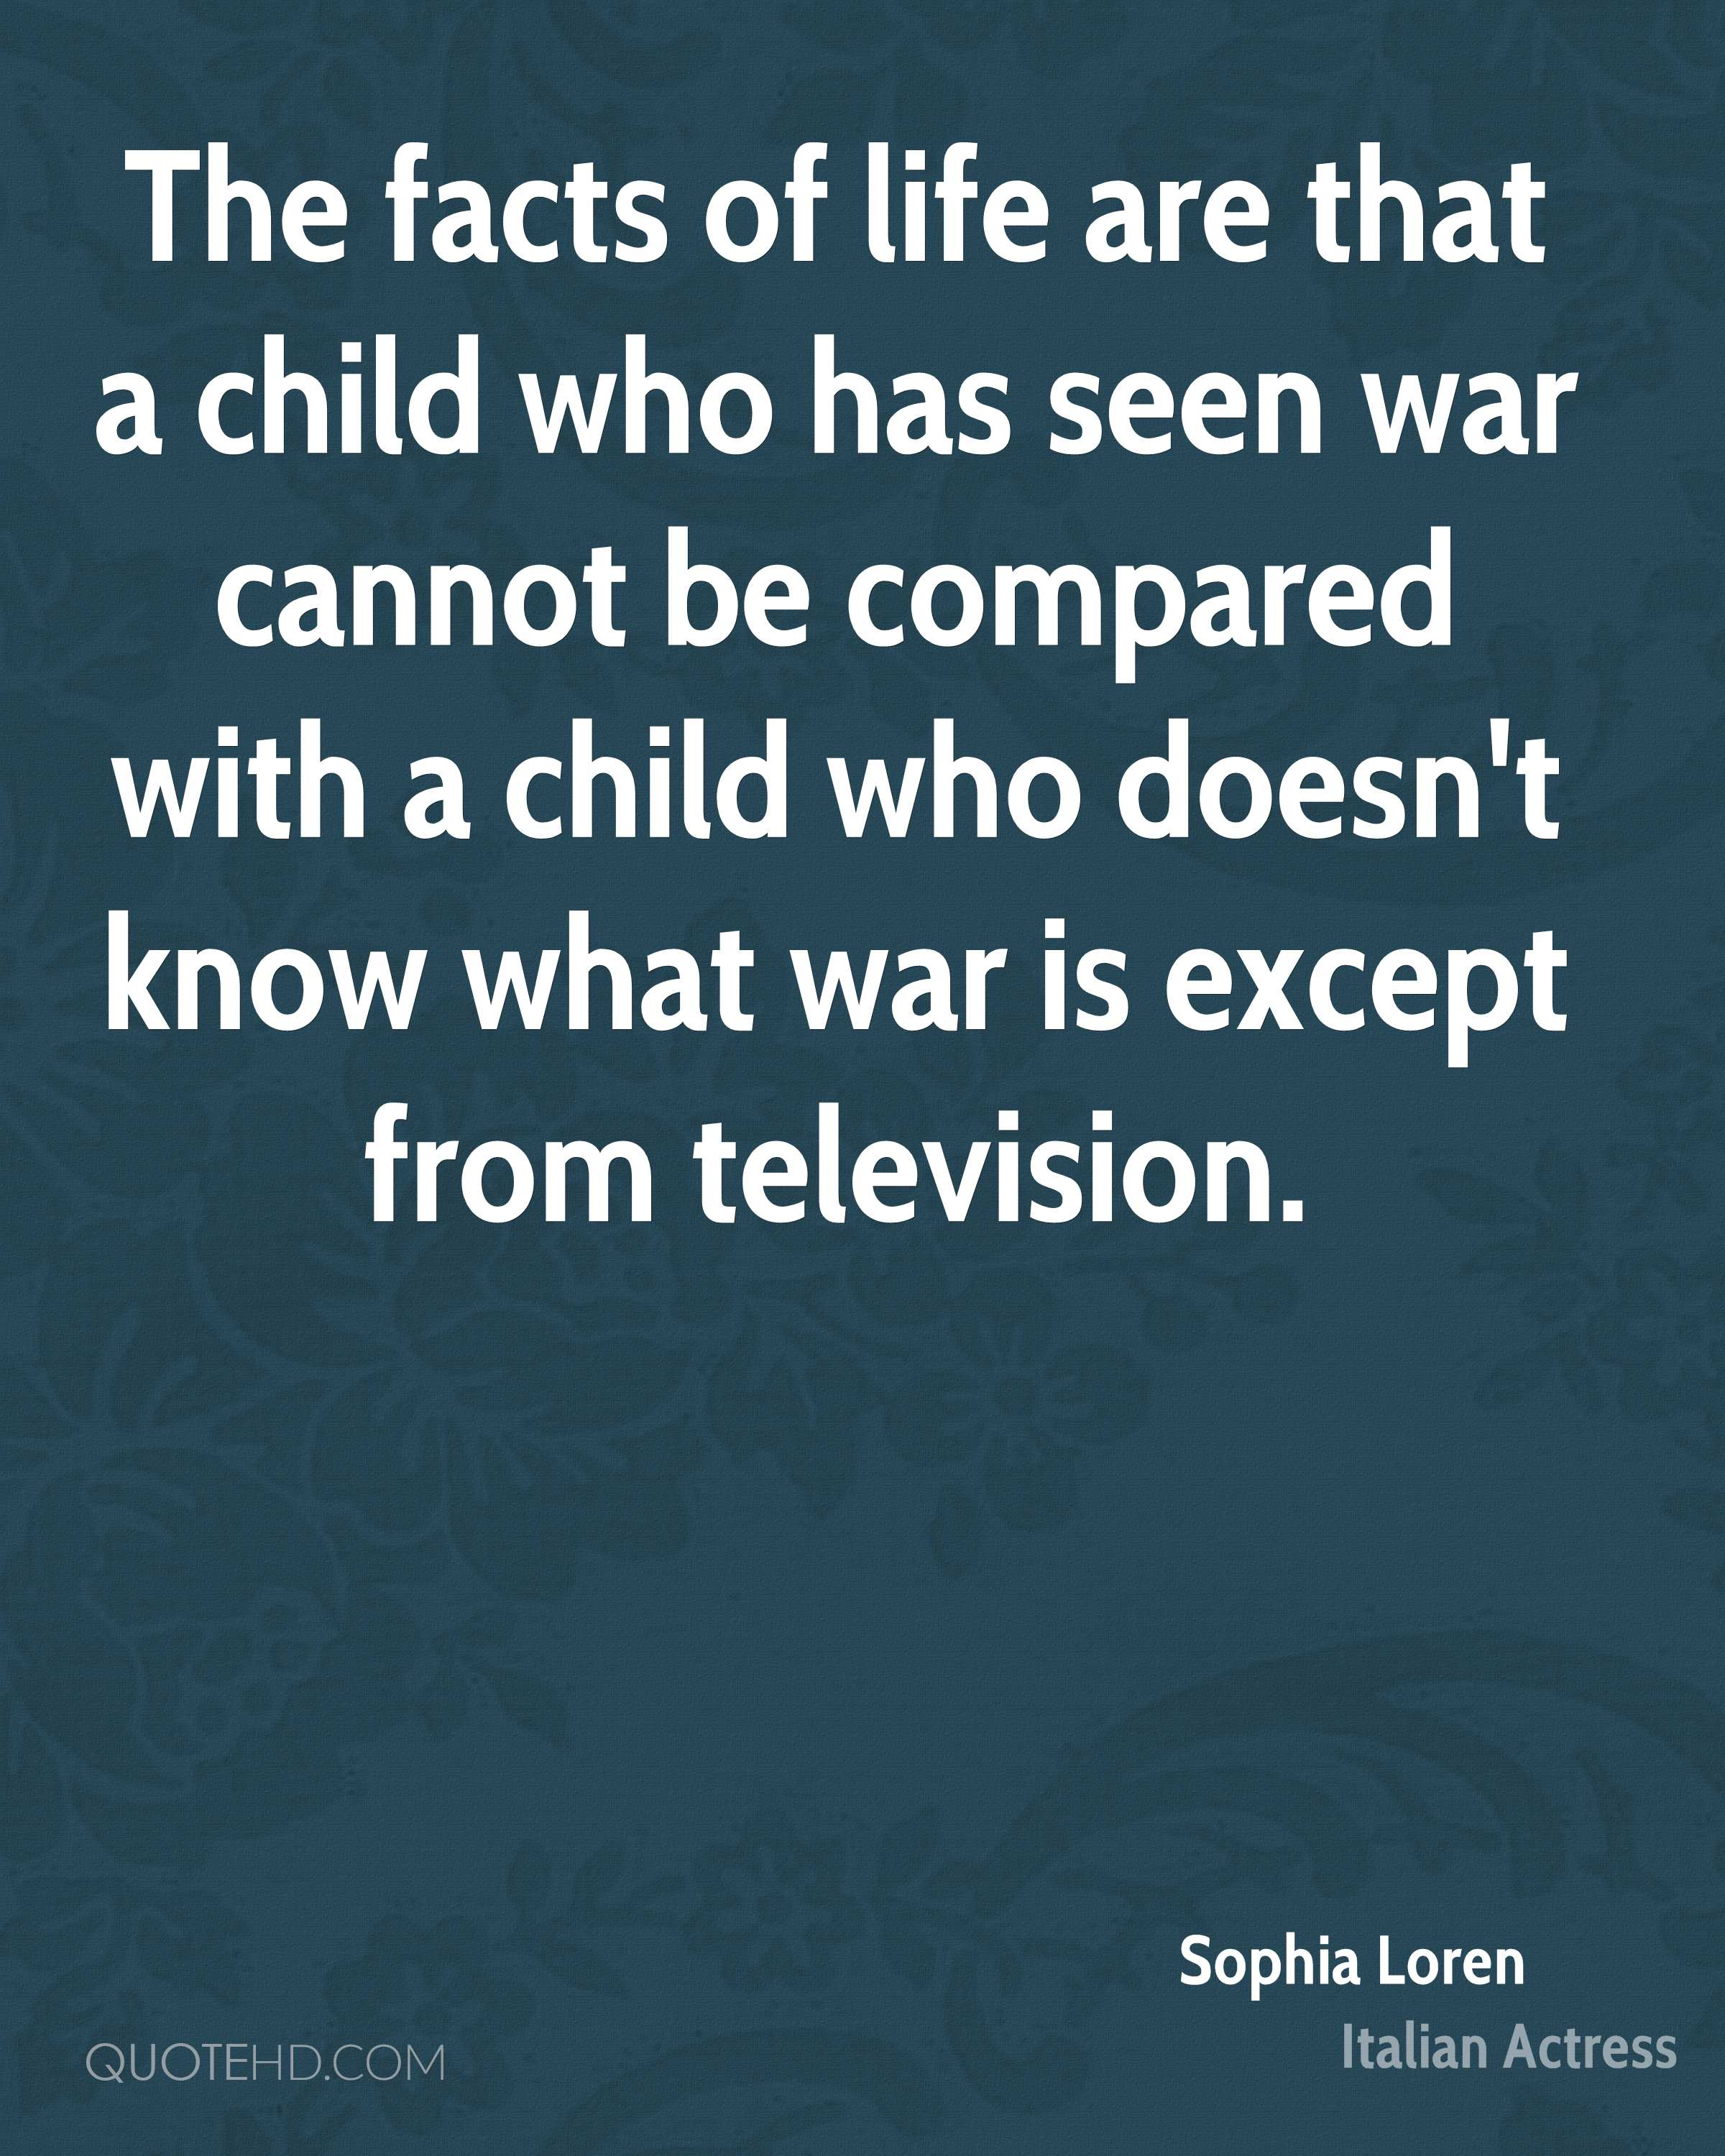 The facts of life are that a child who has seen war cannot be compared with a child who doesn't know what war is except from television.